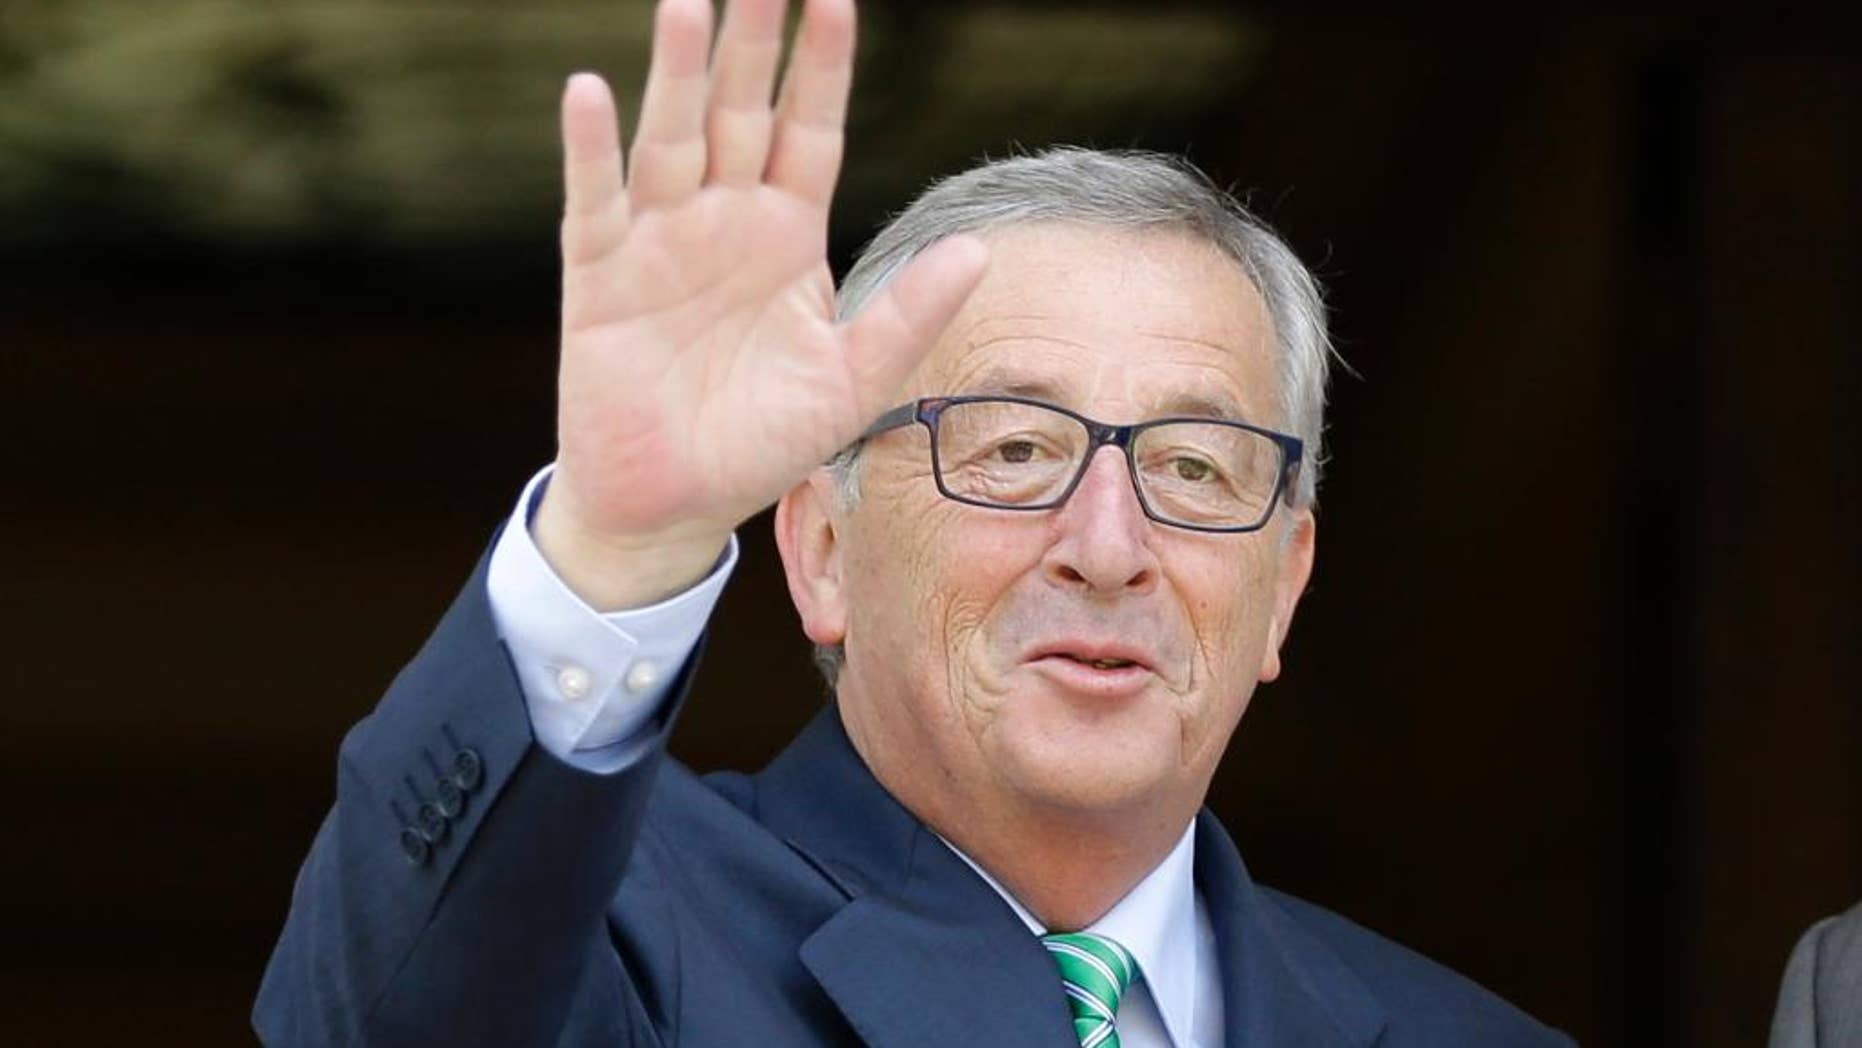 Jean-Claude Juncker, president-elect of the European Commission, left, waves to the media at the Maximos Mansion in Athens, Monday, Aug. 4, 2014. Juncker is visit Athens in his first trip since his election by the new European Parliament last month. He meets Greek Prime Minister Antonis Samaras, a fellow conservative, to express support for the country's ongoing effort to make its public finances sustainable. (AP Photo/Thanassis Stavrakis)